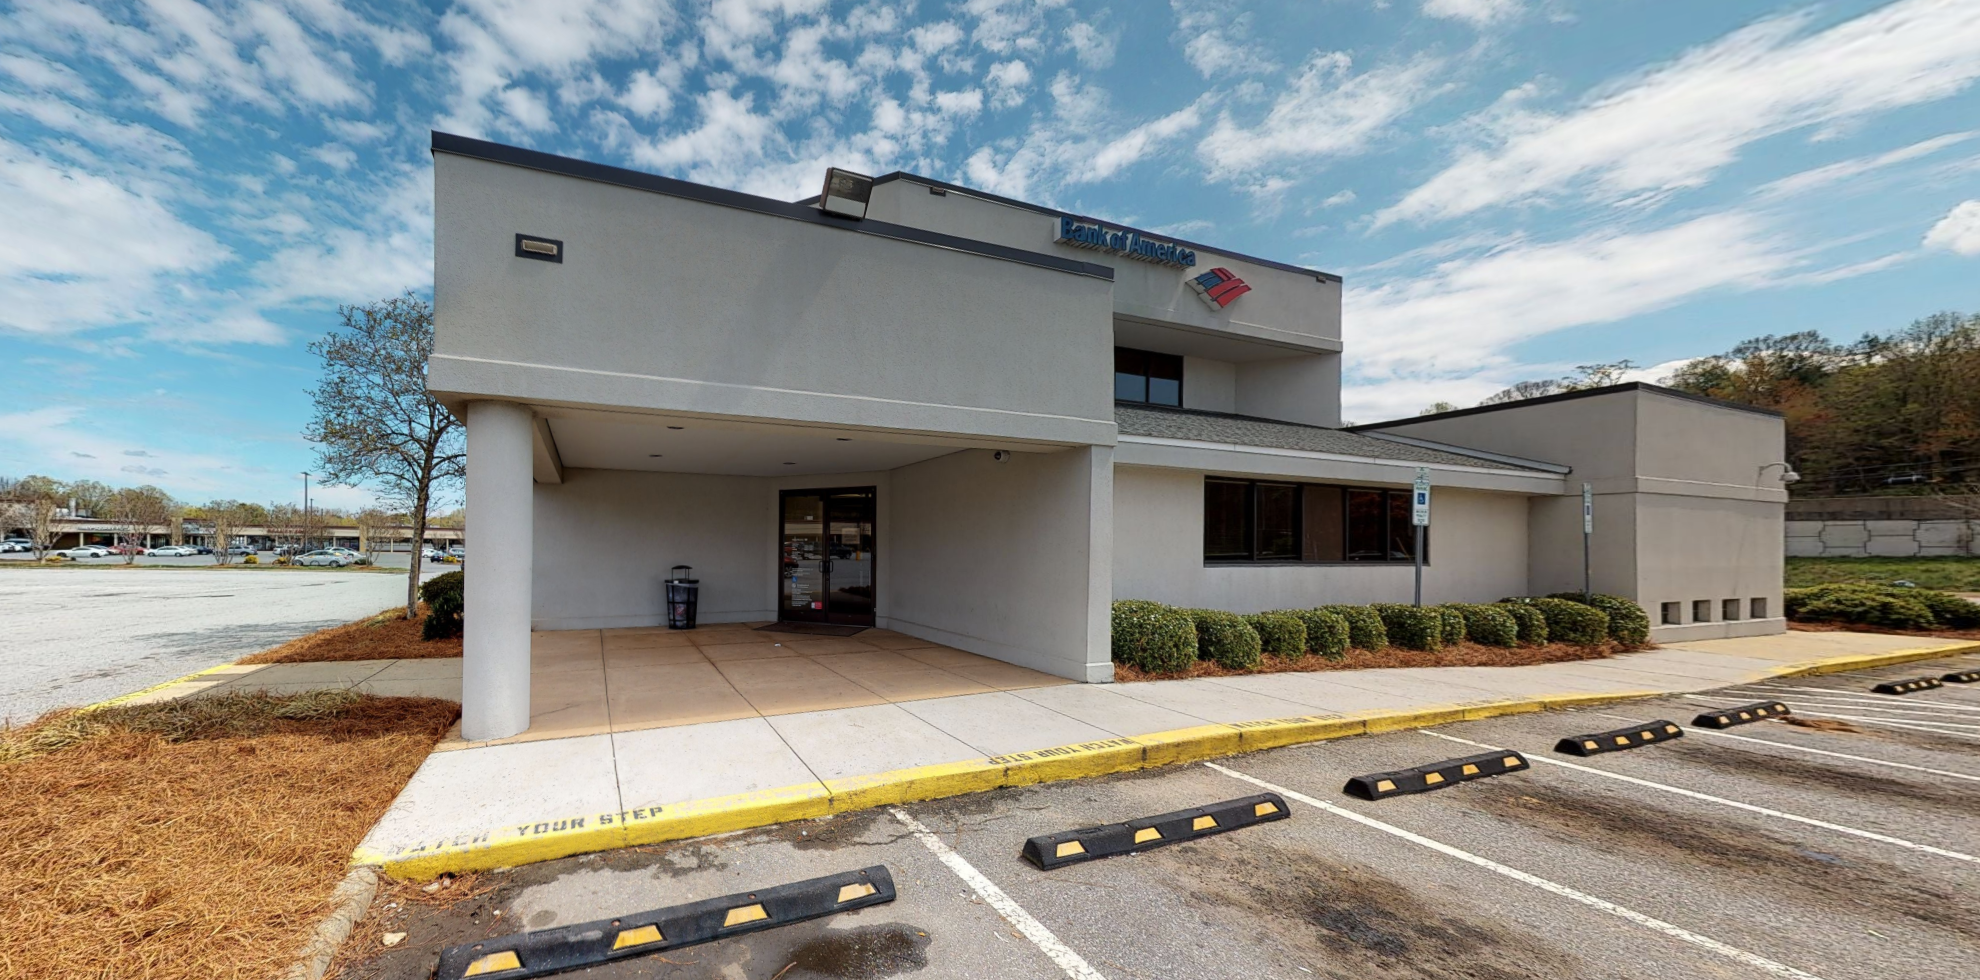 Bank of America financial center with drive-thru ATM and teller | 1209 Silas Creek Pkwy, Winston Salem, NC 27127